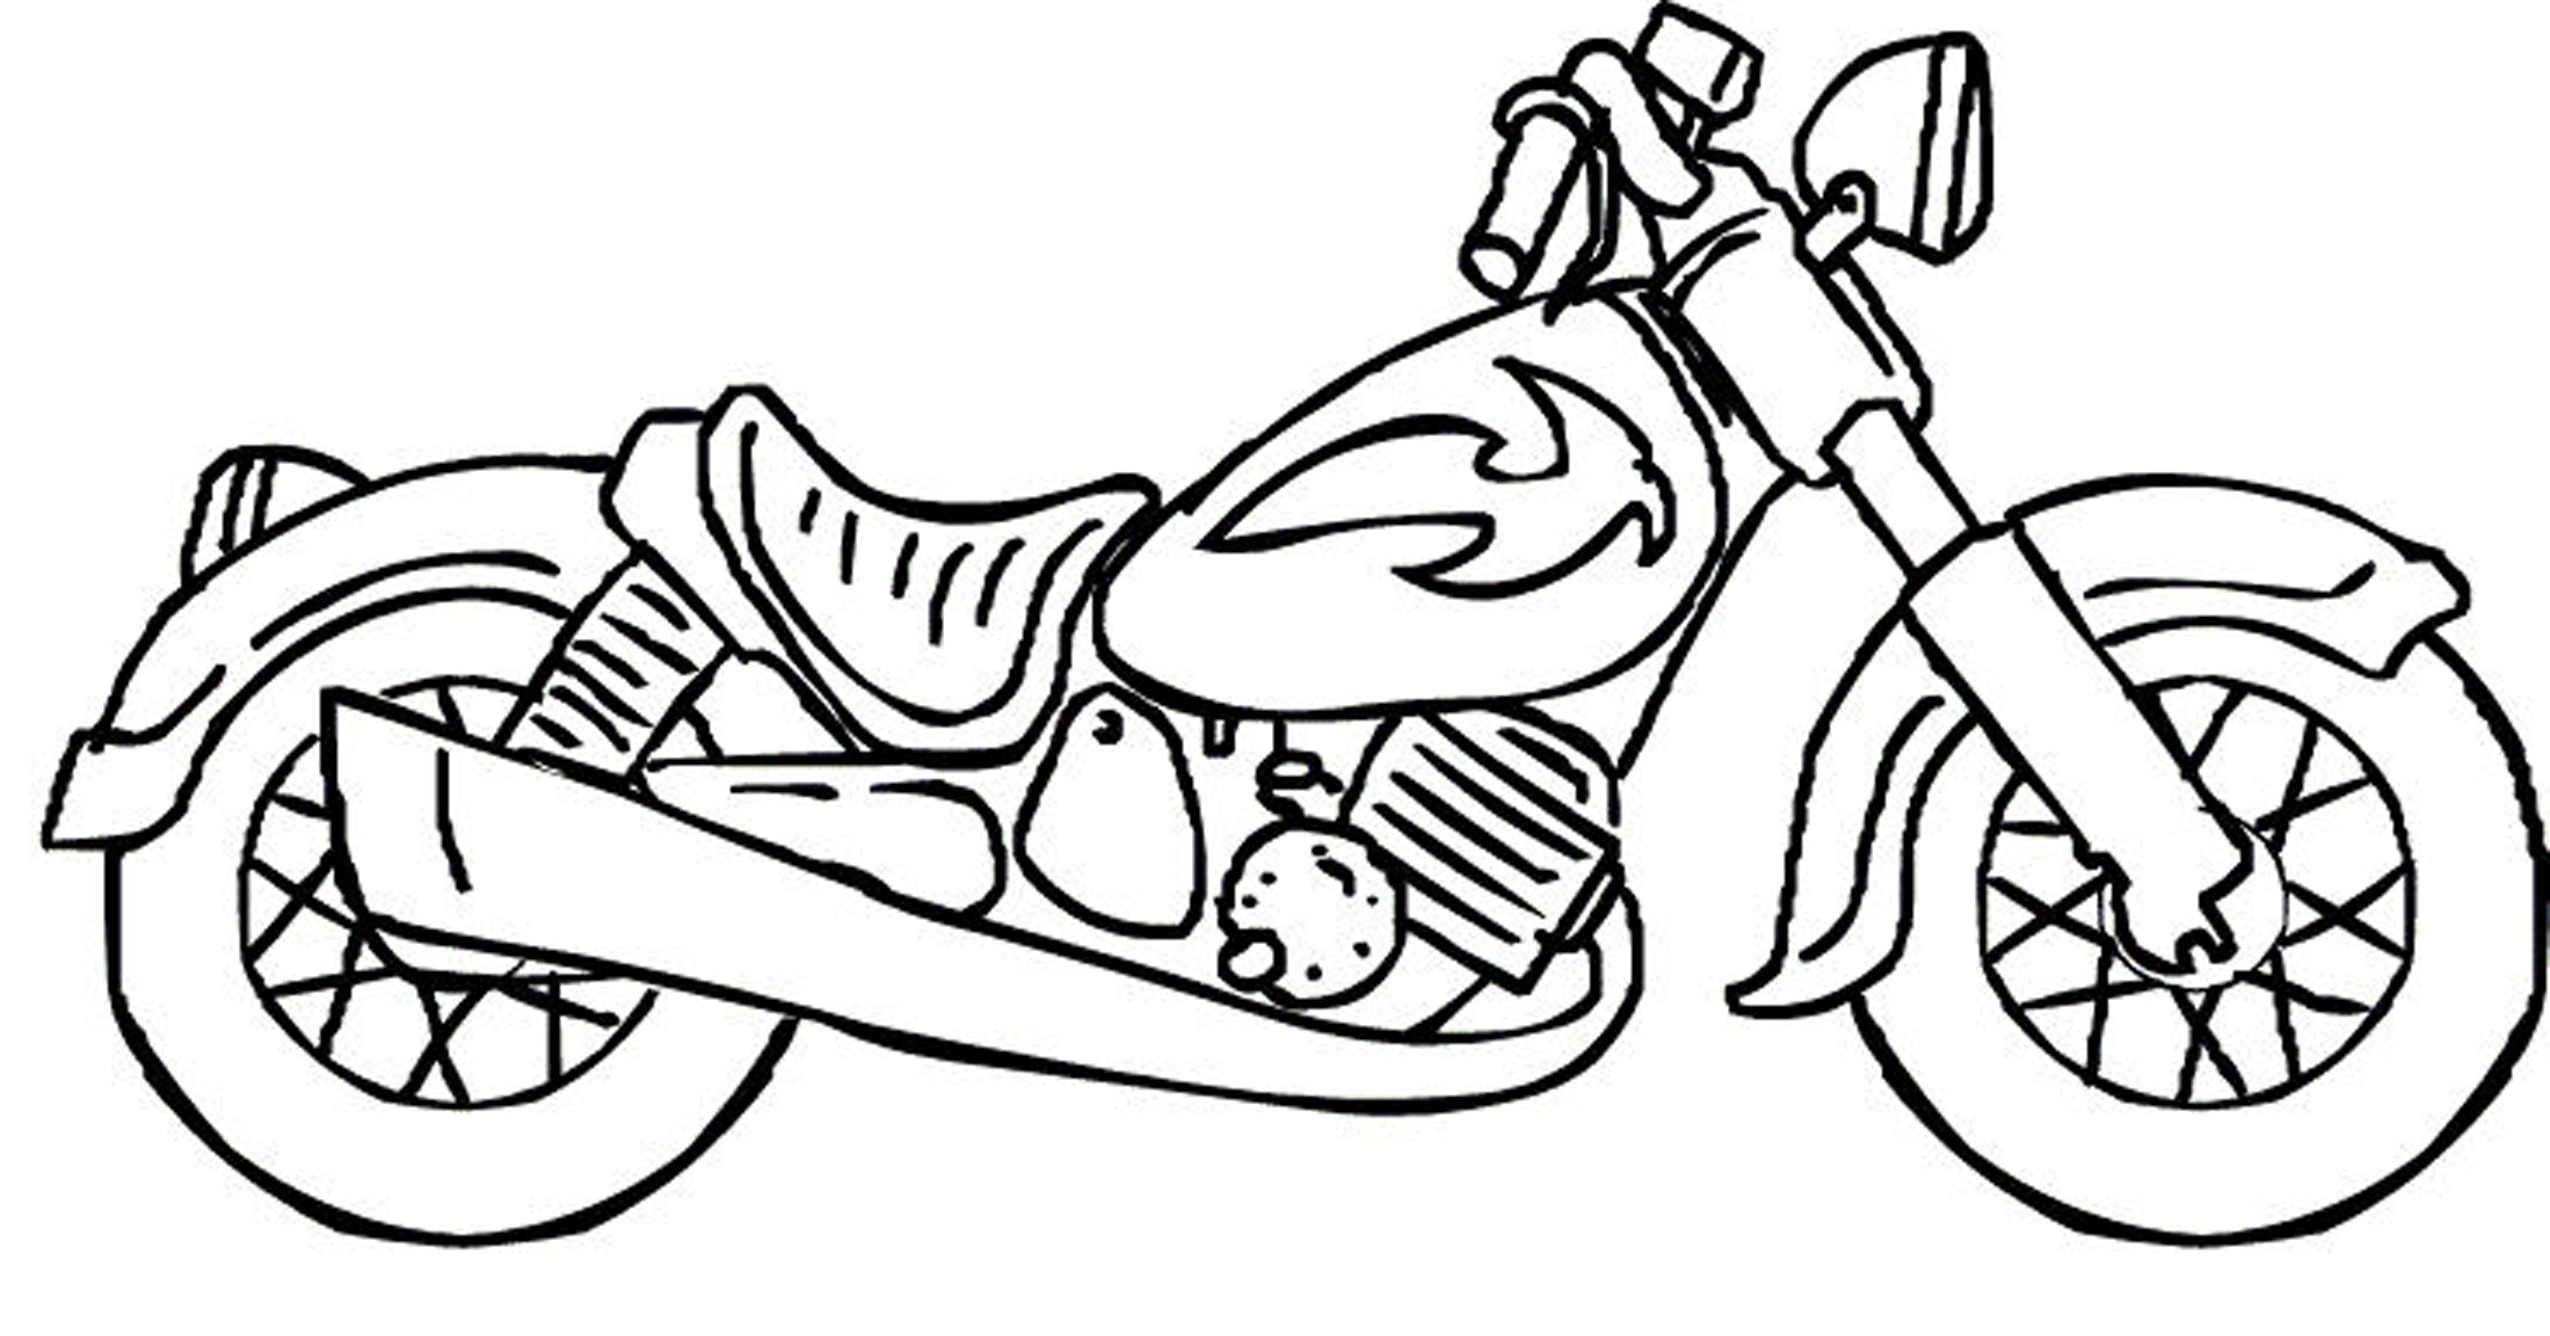 Free Coloring Pages For Boys At Getdrawings